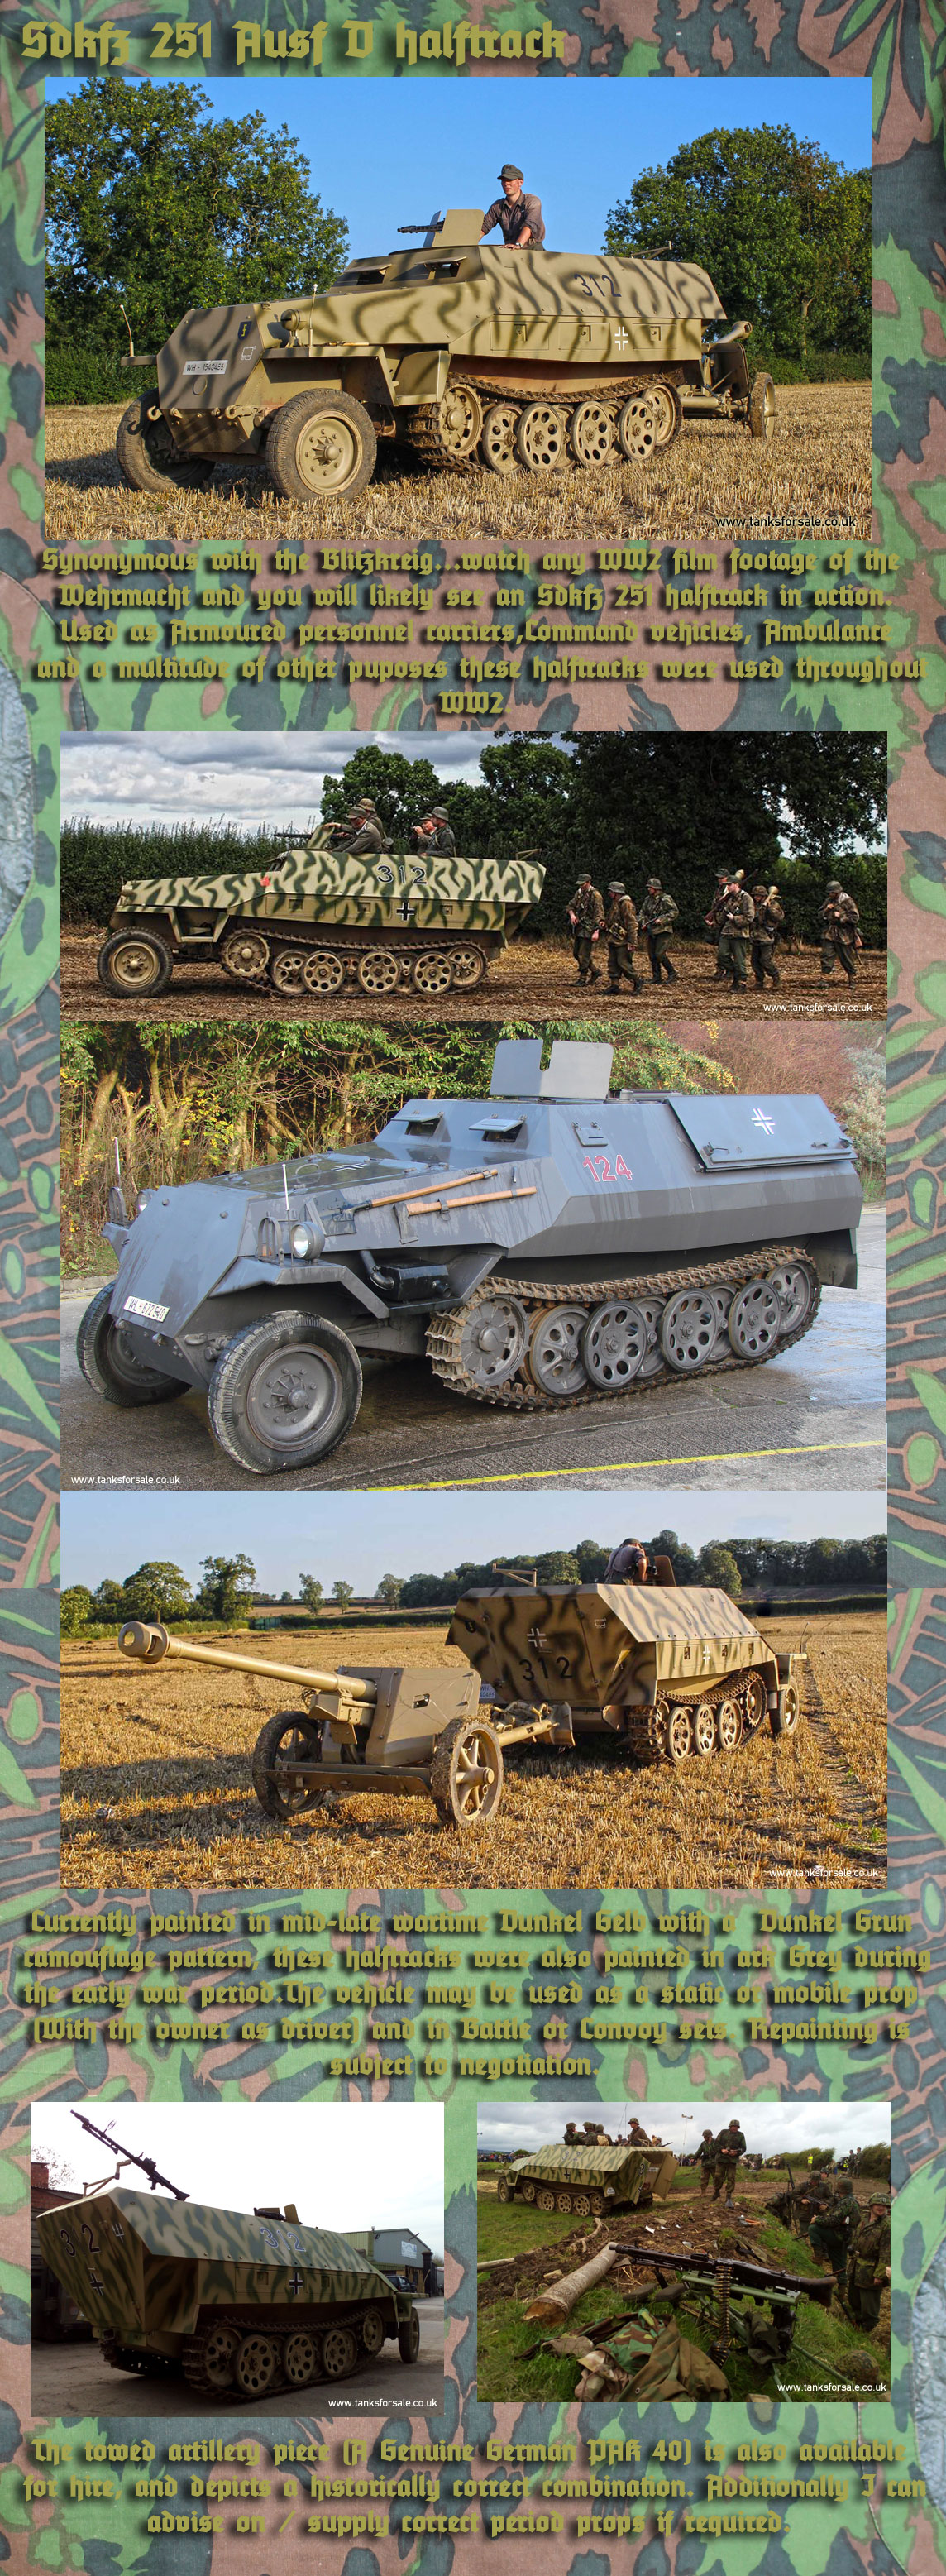 Sdkfz 251 Halftrack for hire details